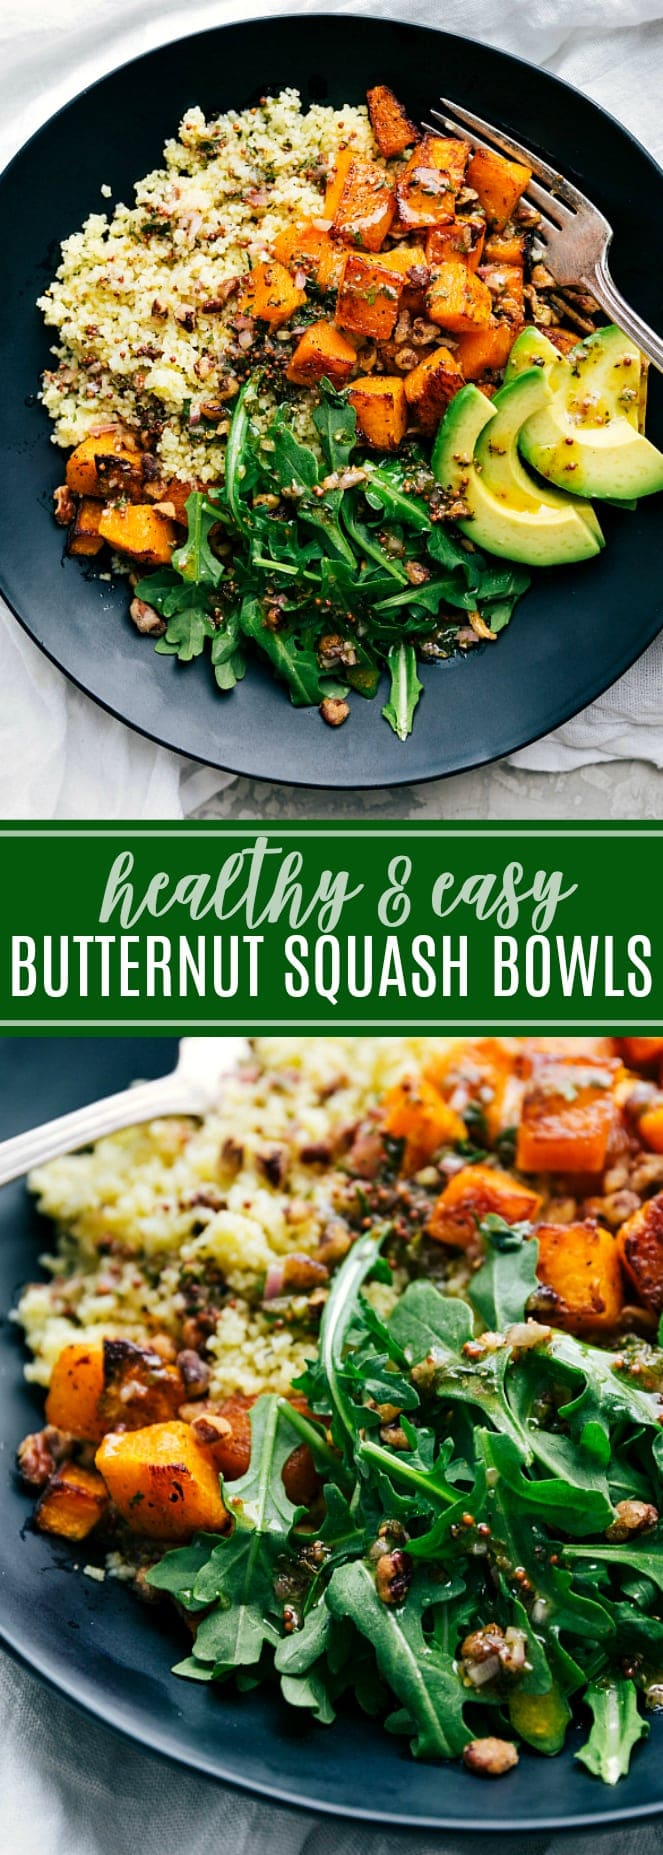 A feel-good roasted veggie dinner! You won't miss the meat in these roasted butternut squash couscous bowls with pecans, avocado, couscous, and a delicious sauce. This post will teach you how to roast the PERFECT butternut squash! via chelseasmessyapron.com #perfect #tried #tested #easy #roasted #butternut #squash #best #quick #simple #vegetarian #meal #dinner #fall #recipe #healthy #avocado #arugula #dressing